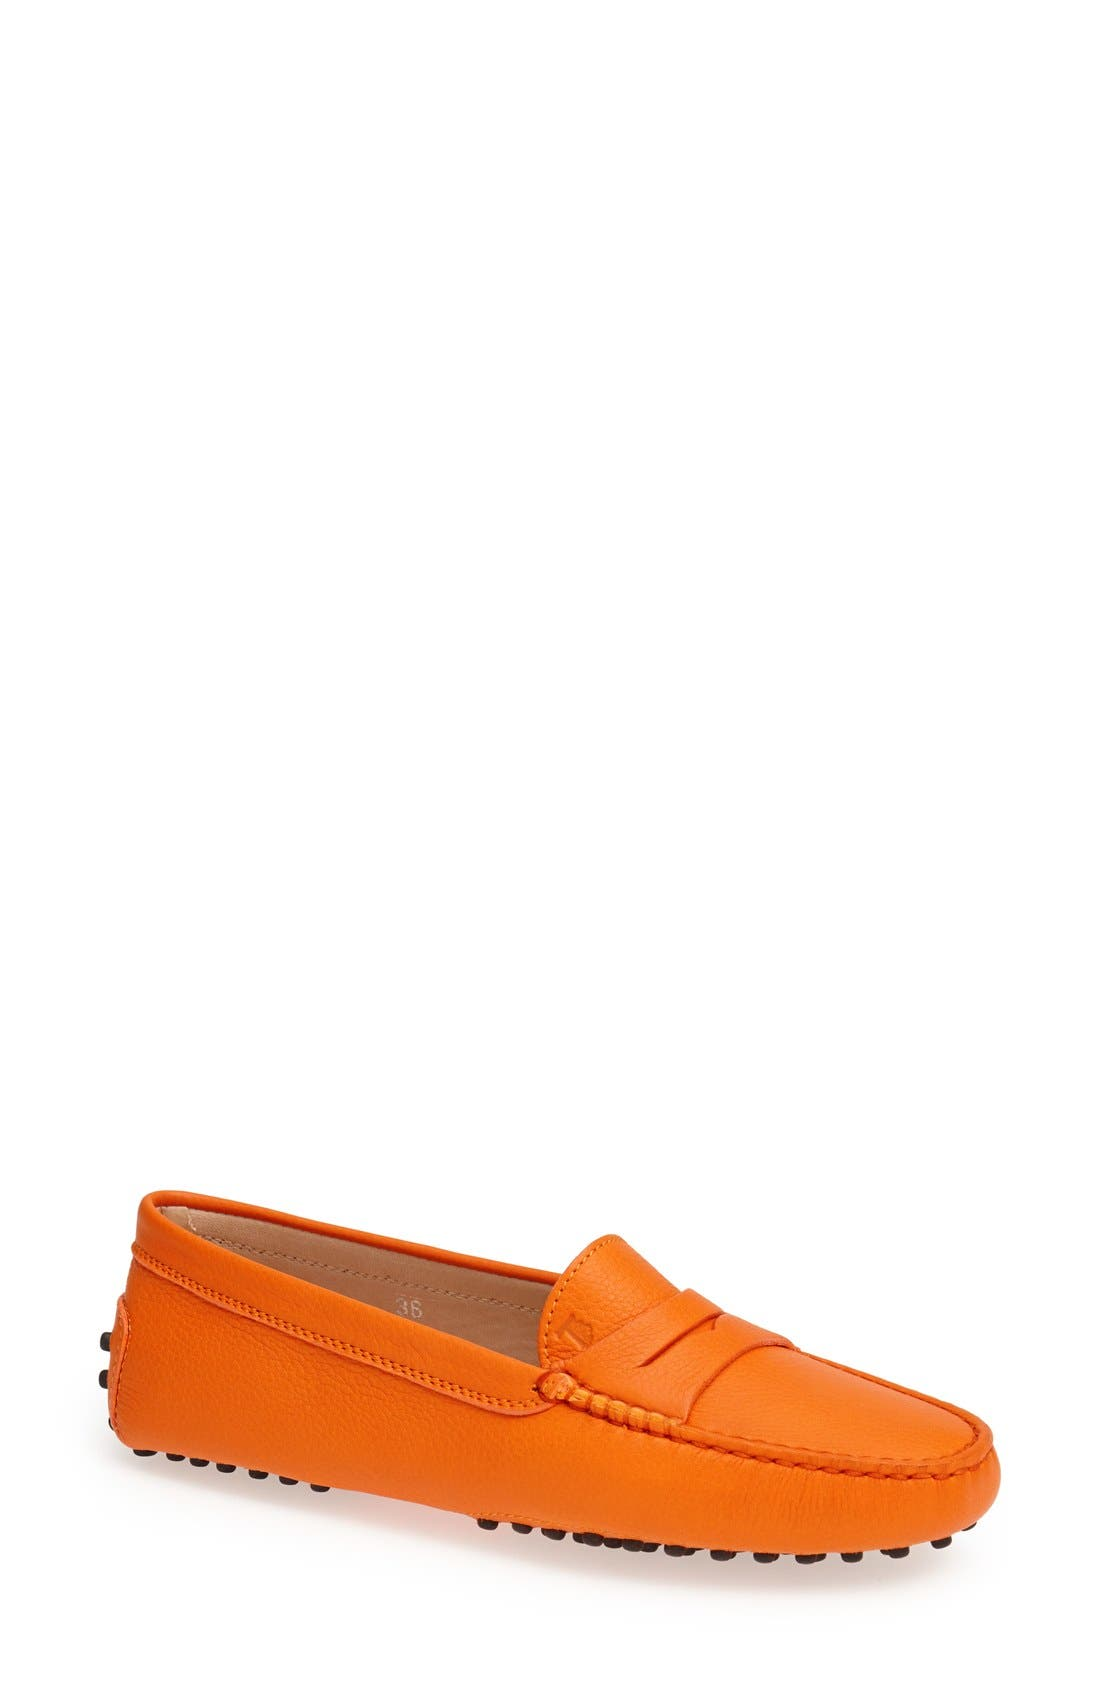 Alternate Image 1 Selected - Tod's 'Gommini' Driving Moccasin (Women)